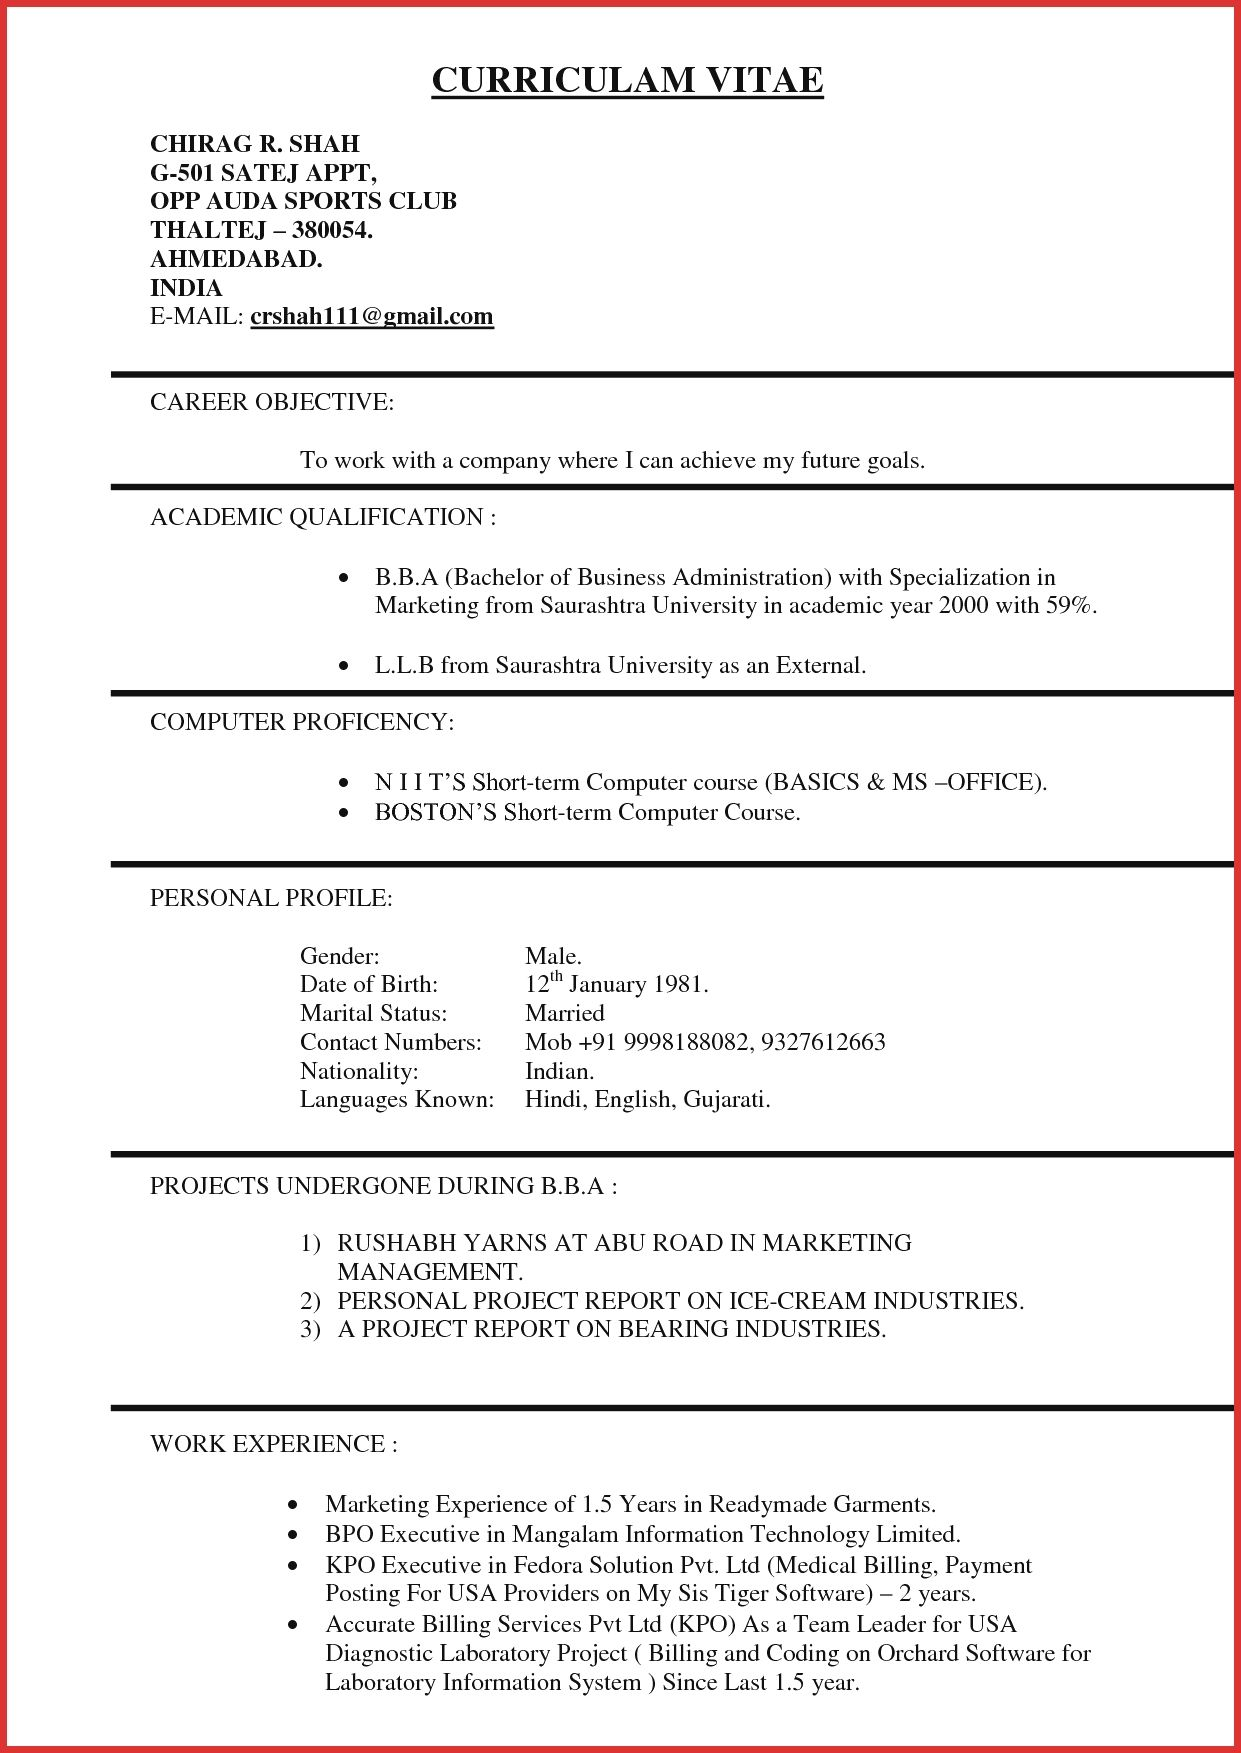 Resume Format Kpo Job resume format, Marketing resume